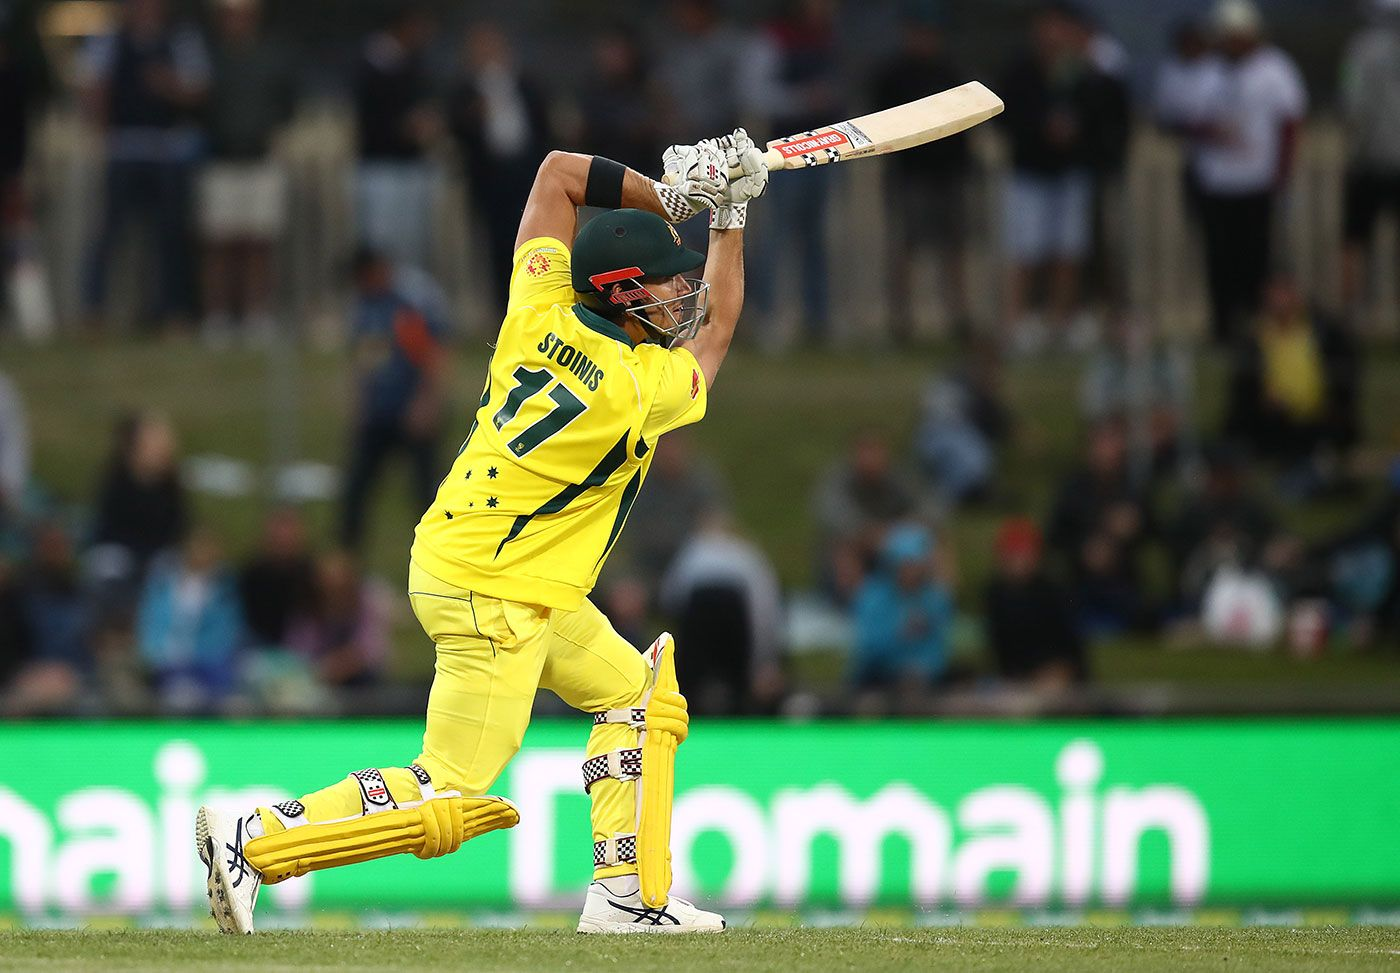 Marcus Stoinis was the third-highest run-scorer with 376 runs during the voting period.